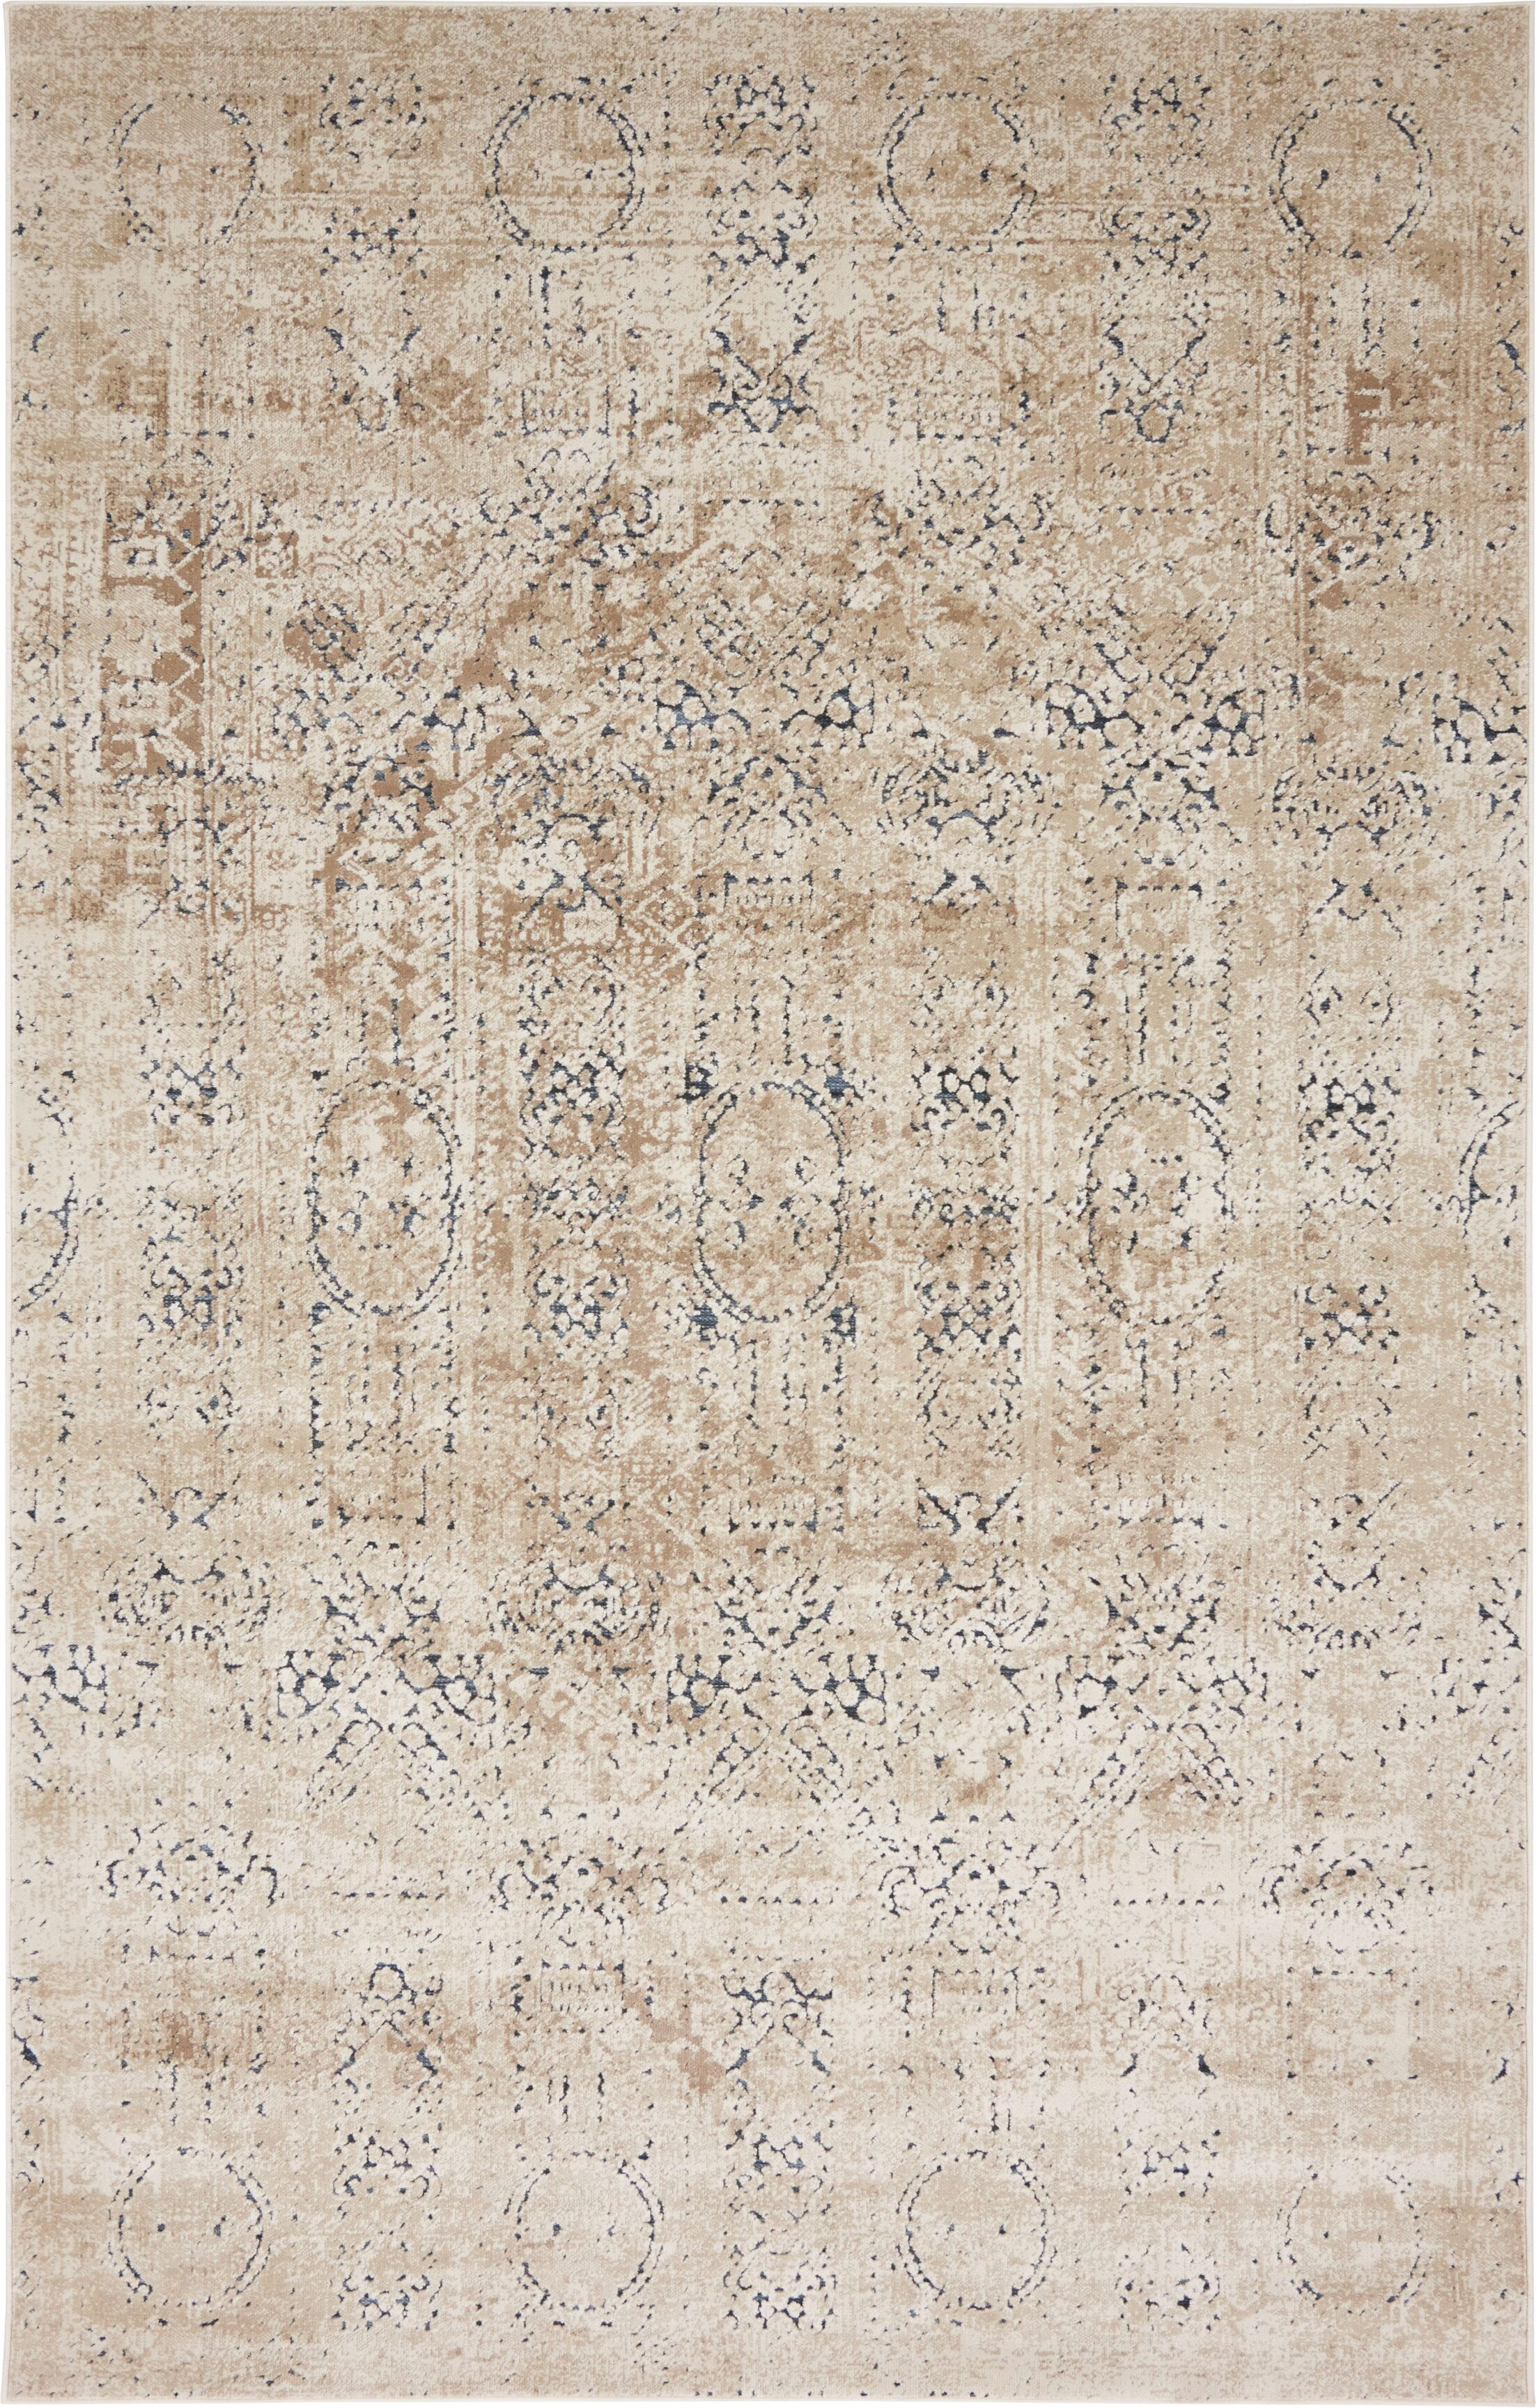 Abbeville Beige Area Rug Rug Size: Rectangle 5' x 8'